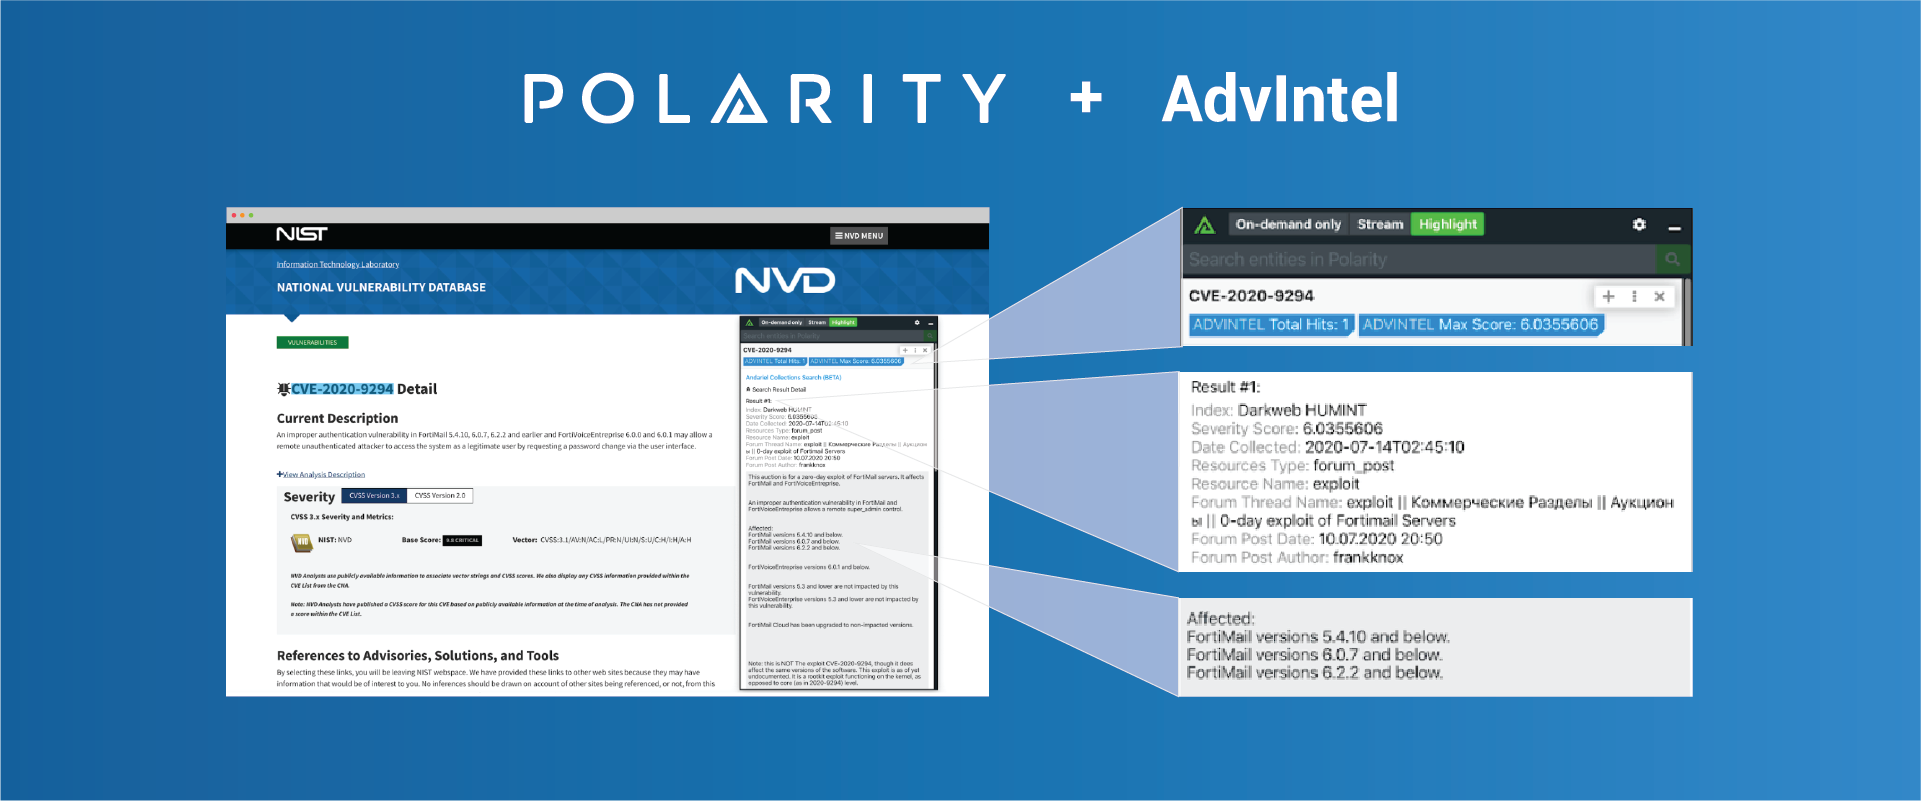 Instant Contextual Awareness of New and Emerging Threats with Polarity and AdvIntel cover image